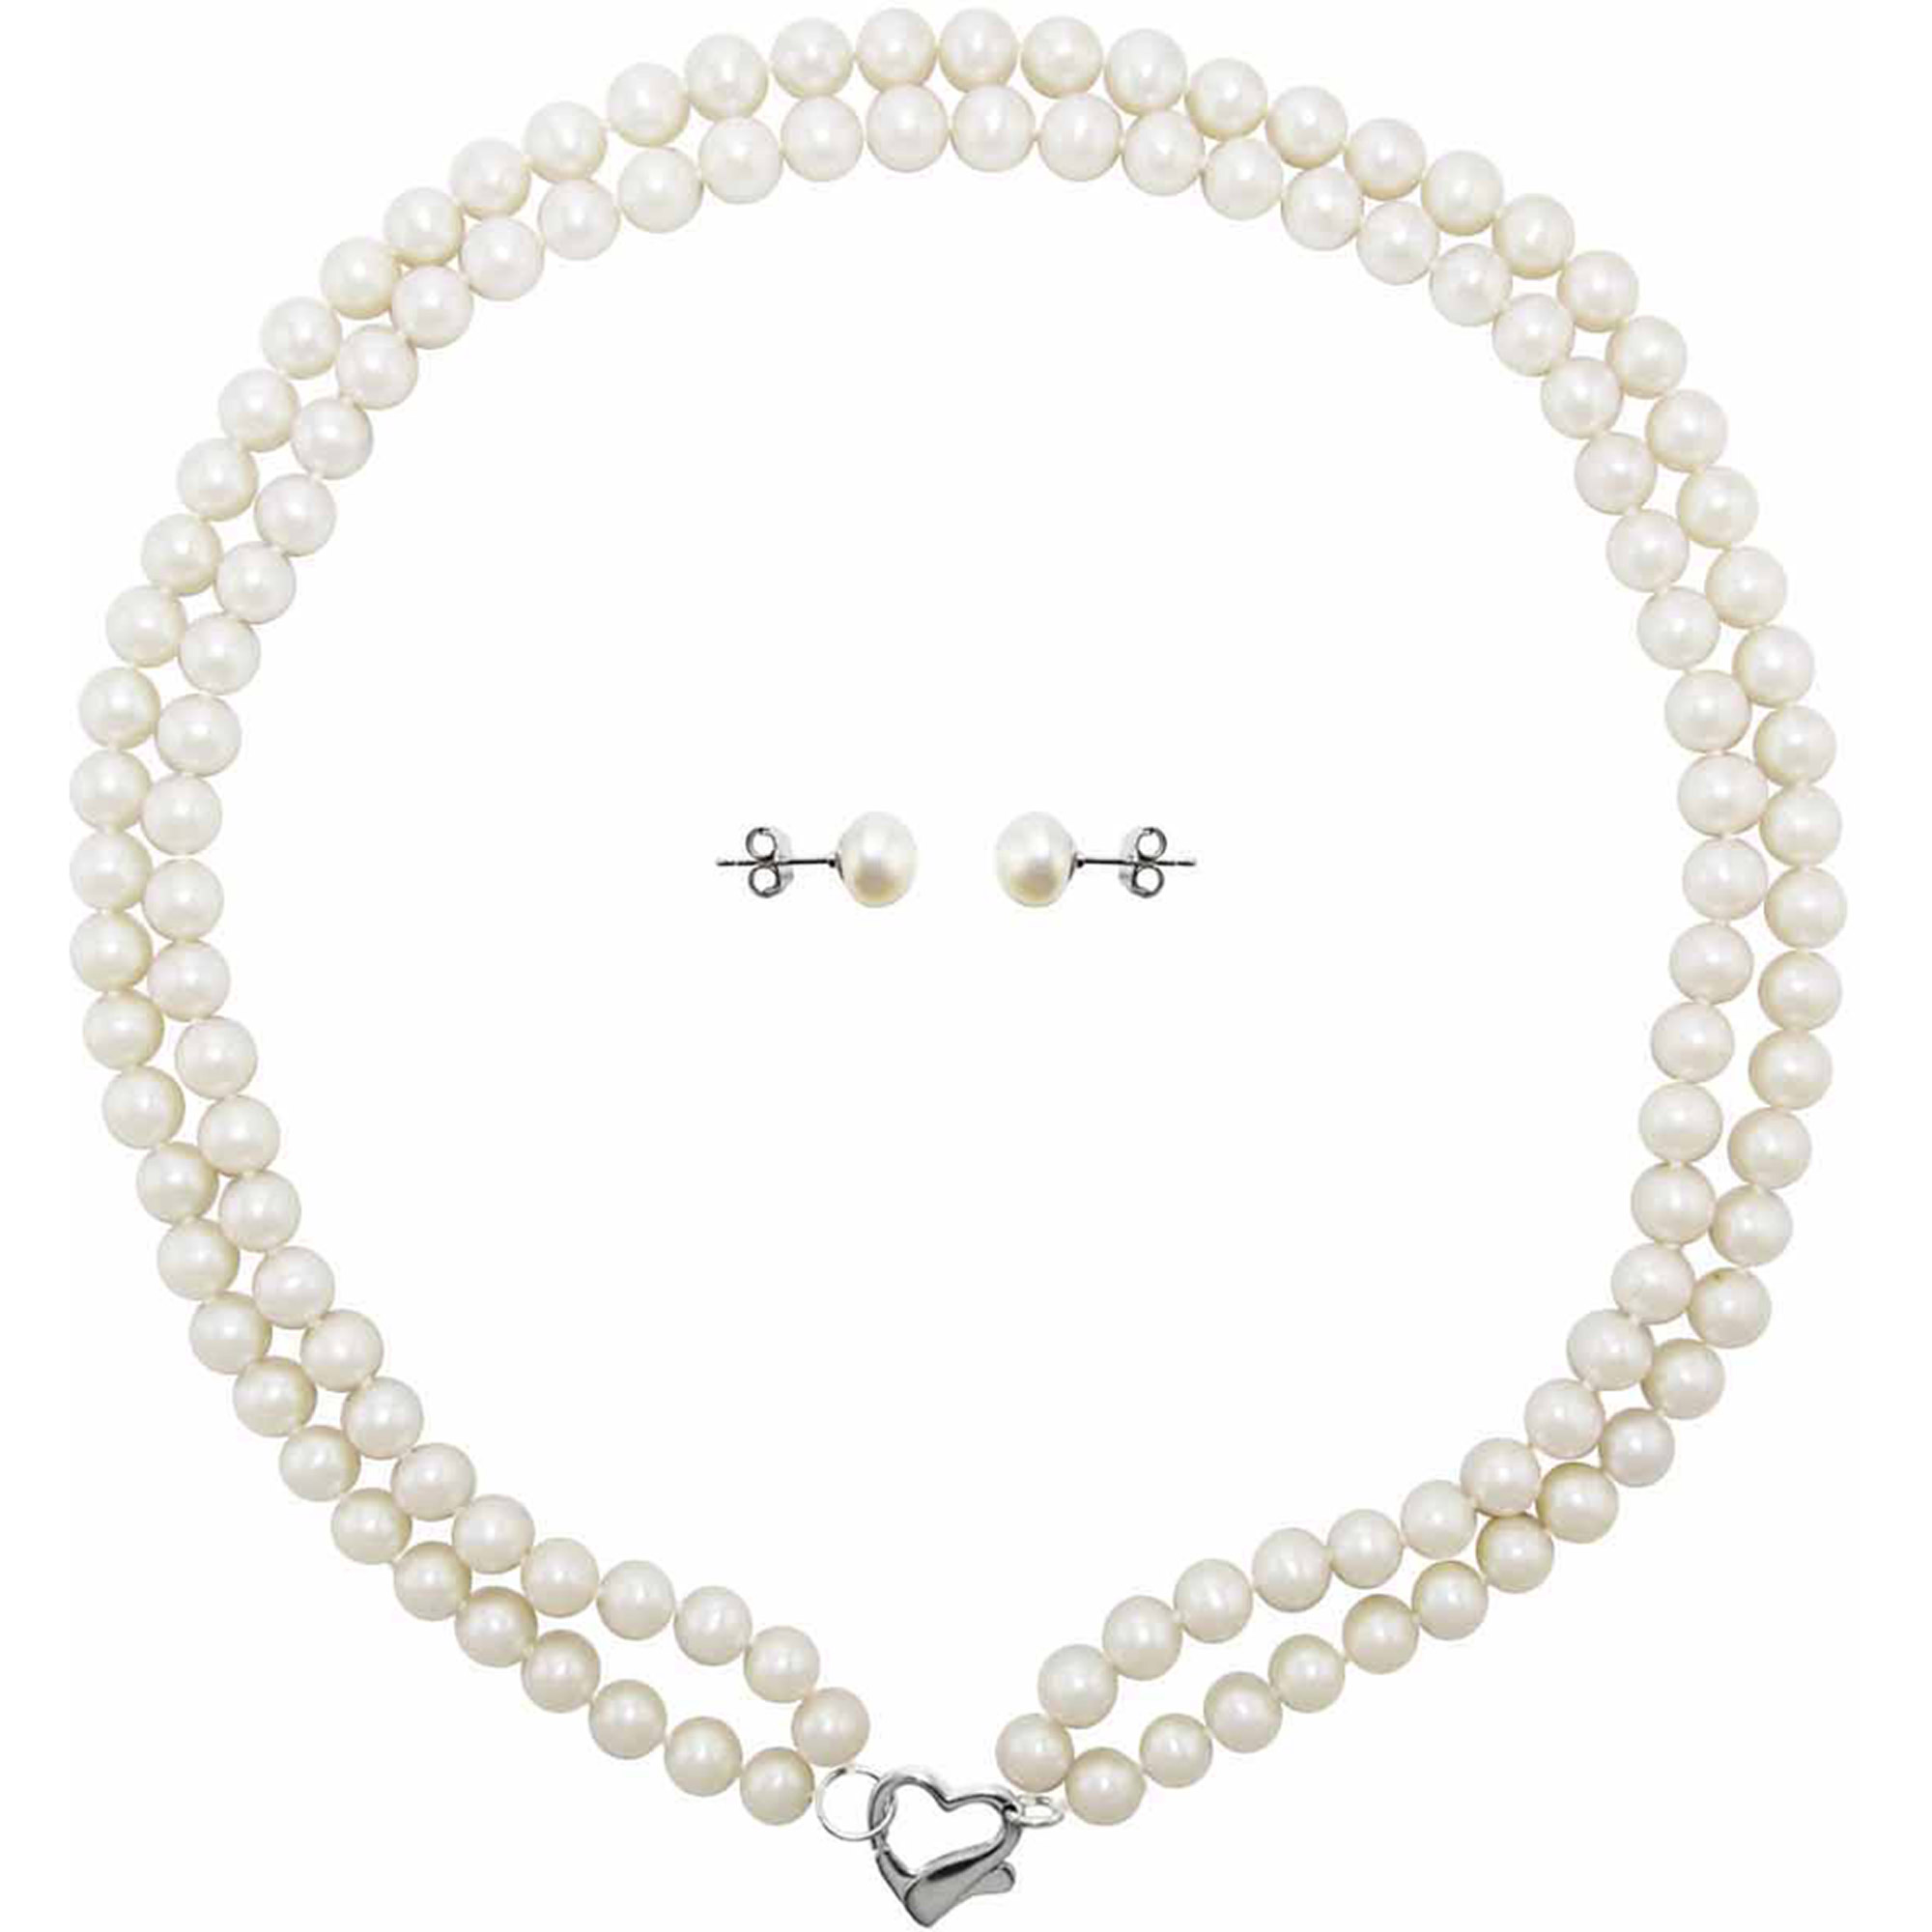 "Image of Double Row 6-7mm White Freshwater Pearl Heart-Shape Sterling Silver Clasp Necklace (18"") with Bonus Pearl Stud Earrings"